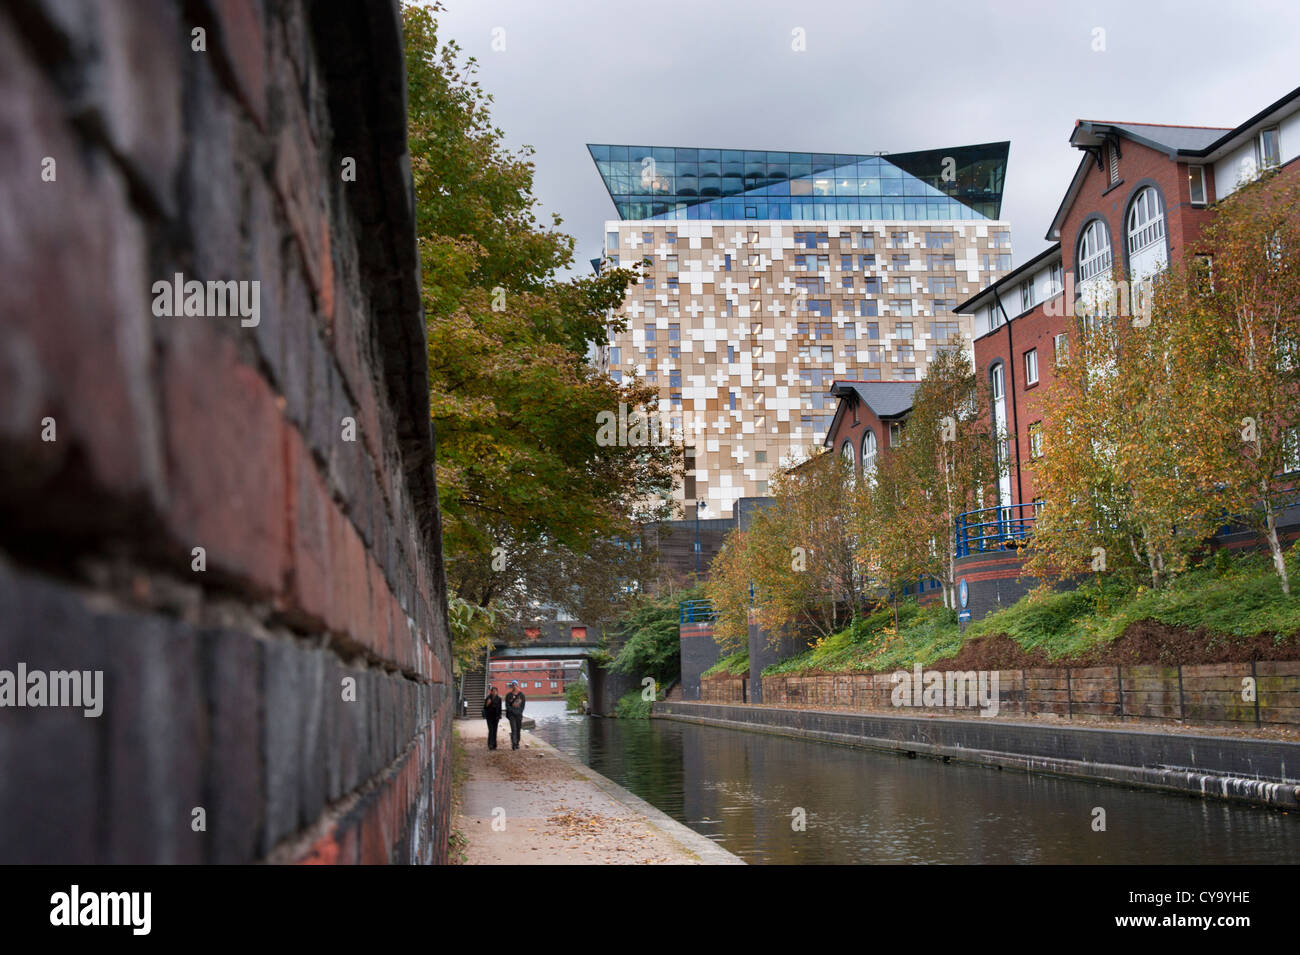 The towpath along the Birmingham and Worcester Canal, and new buildings, near the city centre, Birmingham - Stock Image